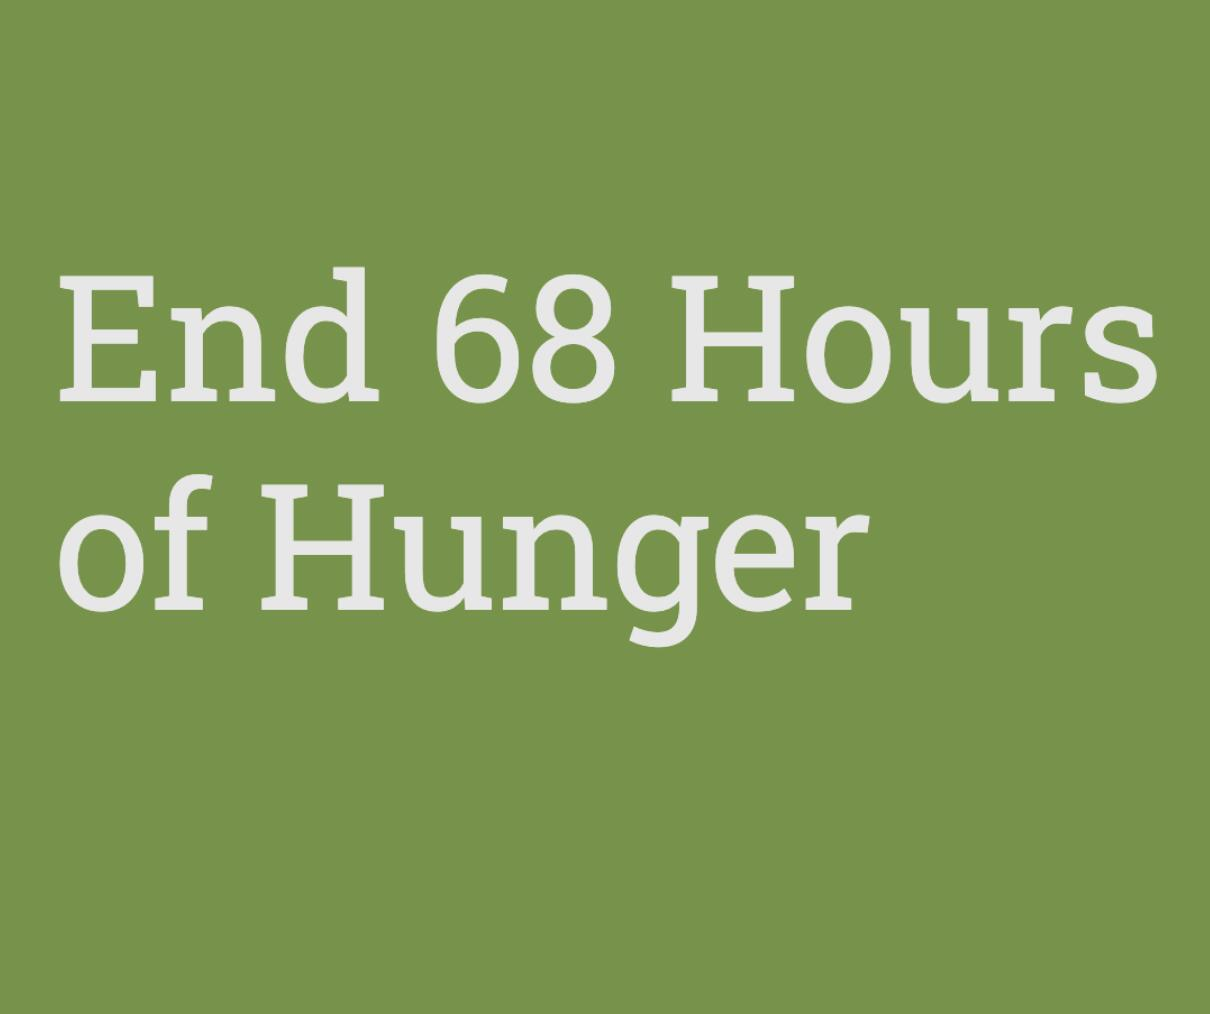 End 68 Hours of Hunger program logo